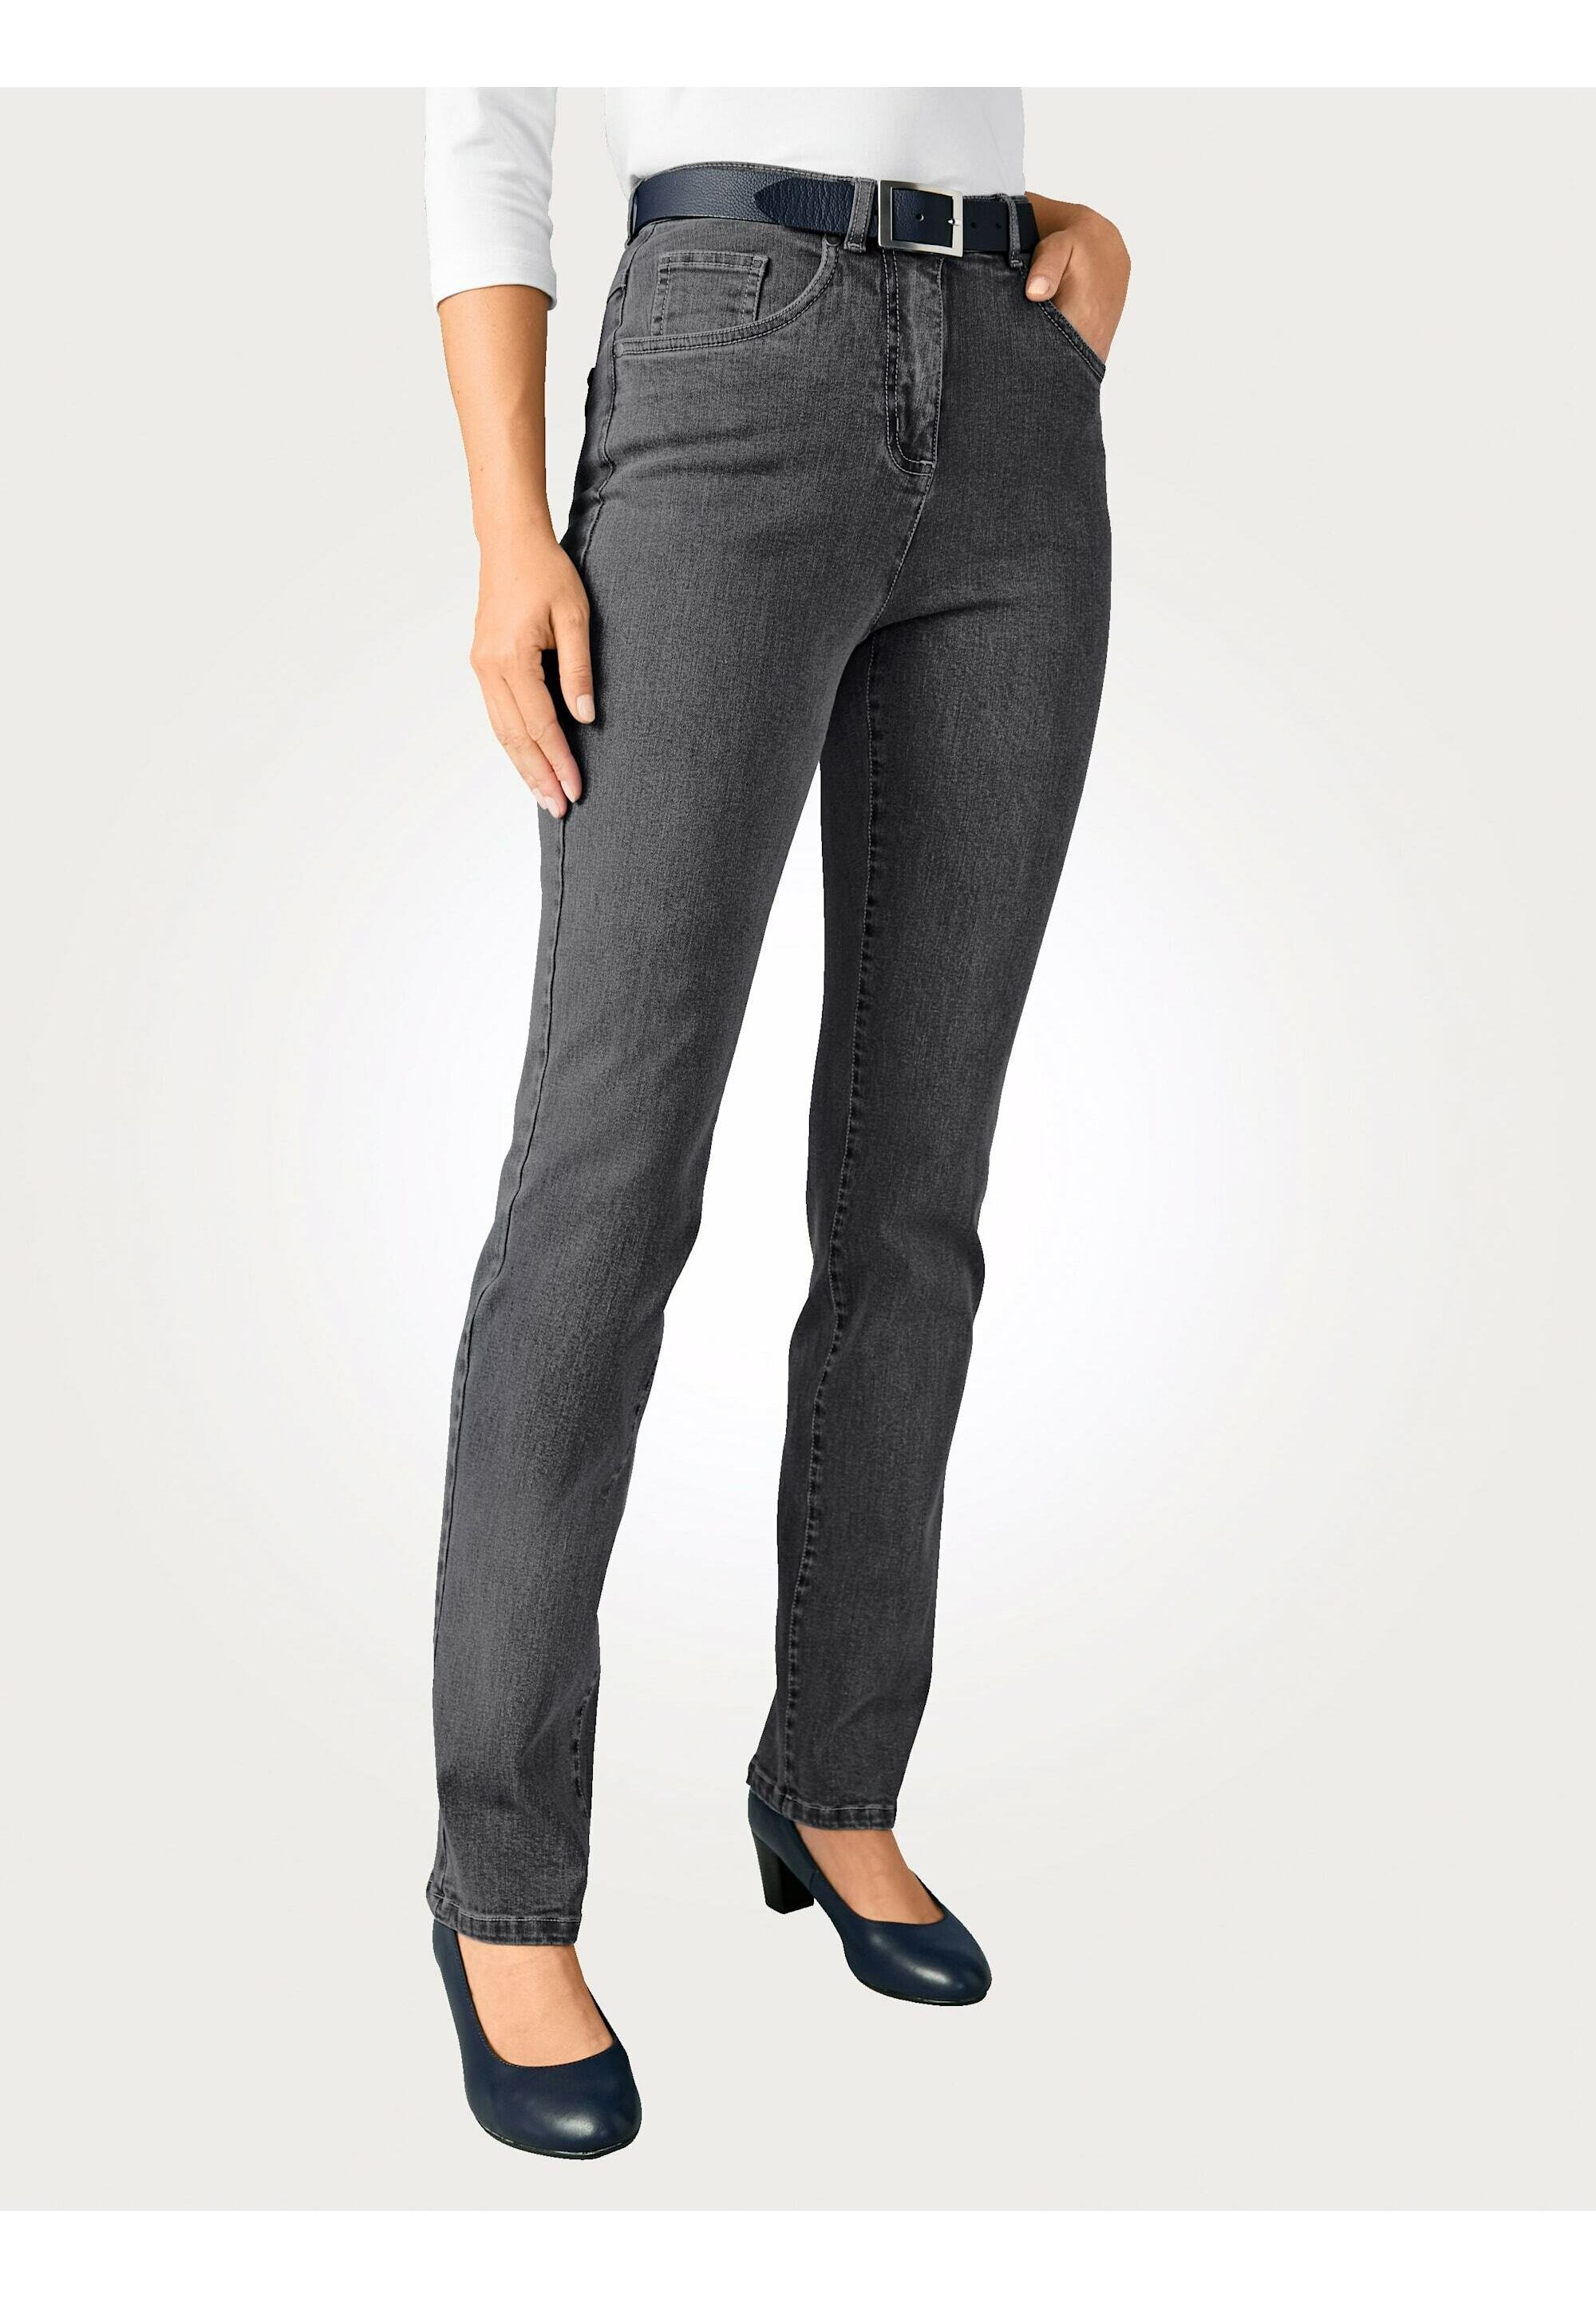 Damen Jeans Relaxed Fit